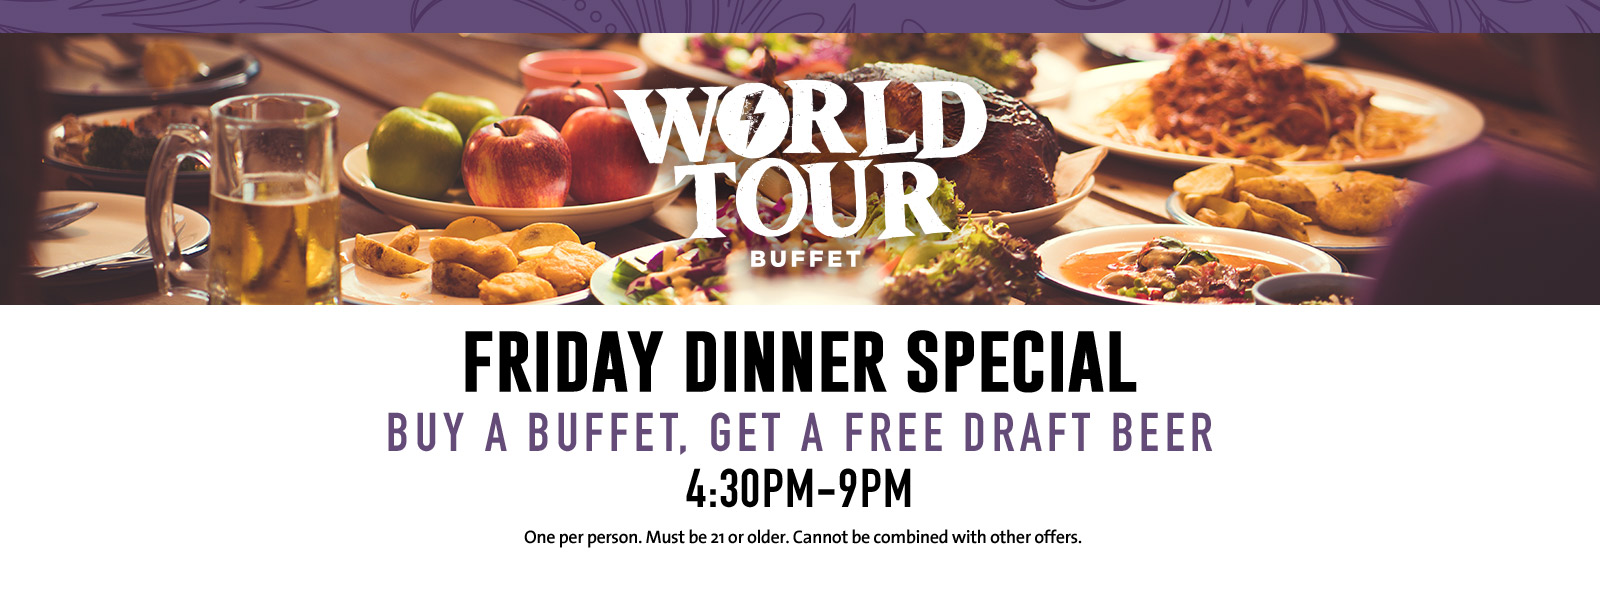 things to do in sioux city world tour buffet